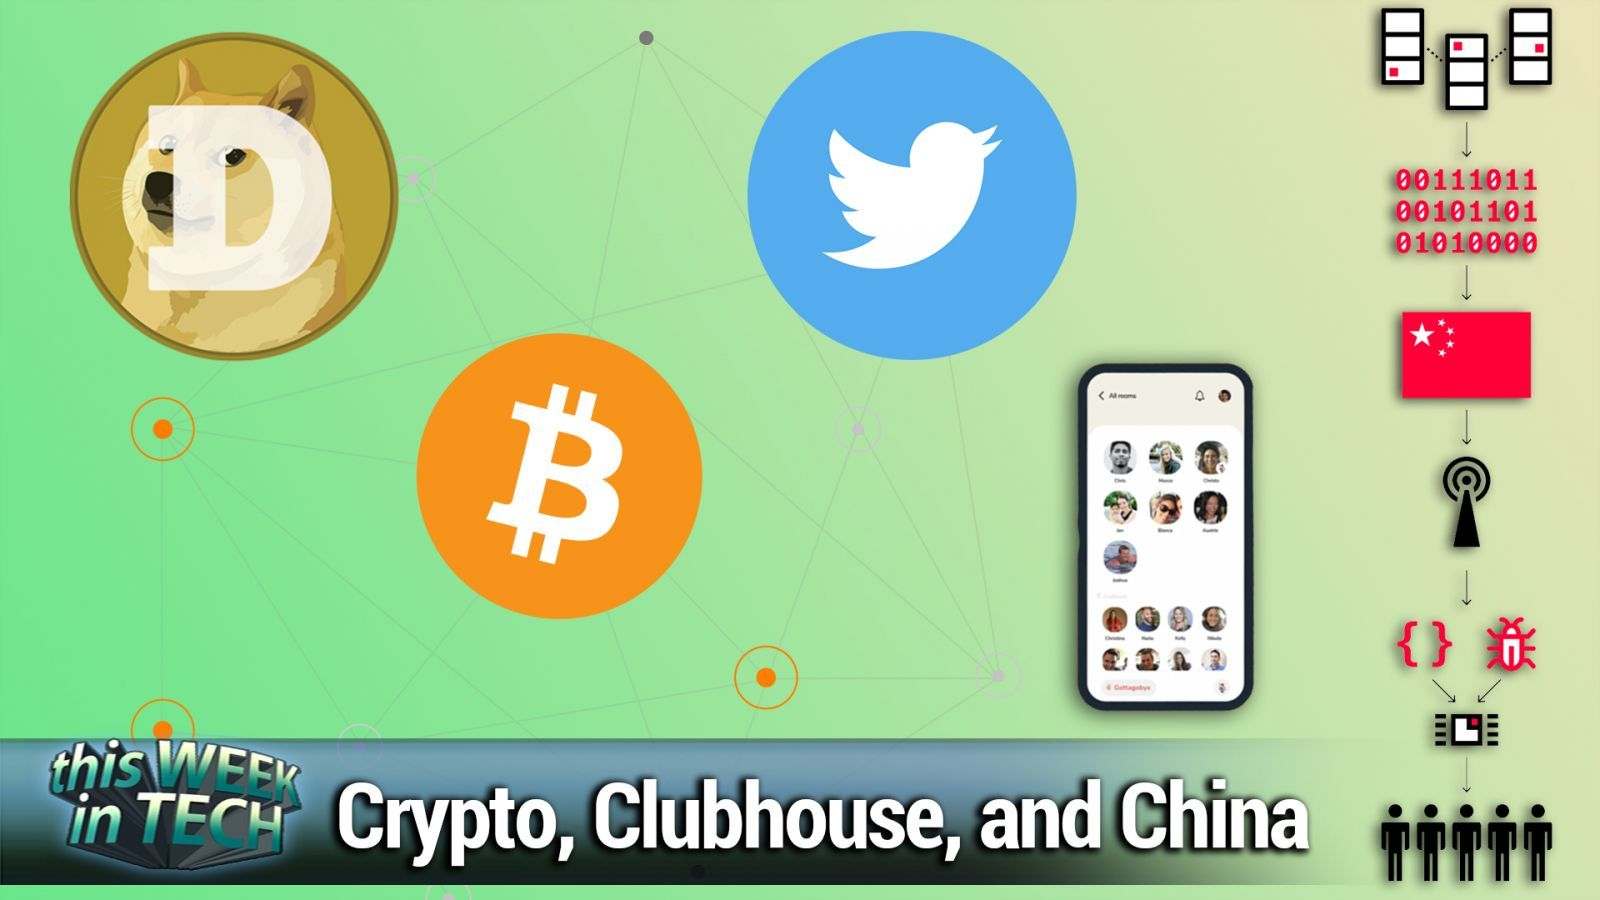 TWiT 810: In a Room With Oprah - Crypto legitimacy, Facebook wearable, Twitter's Bluesky, Supermicro hack